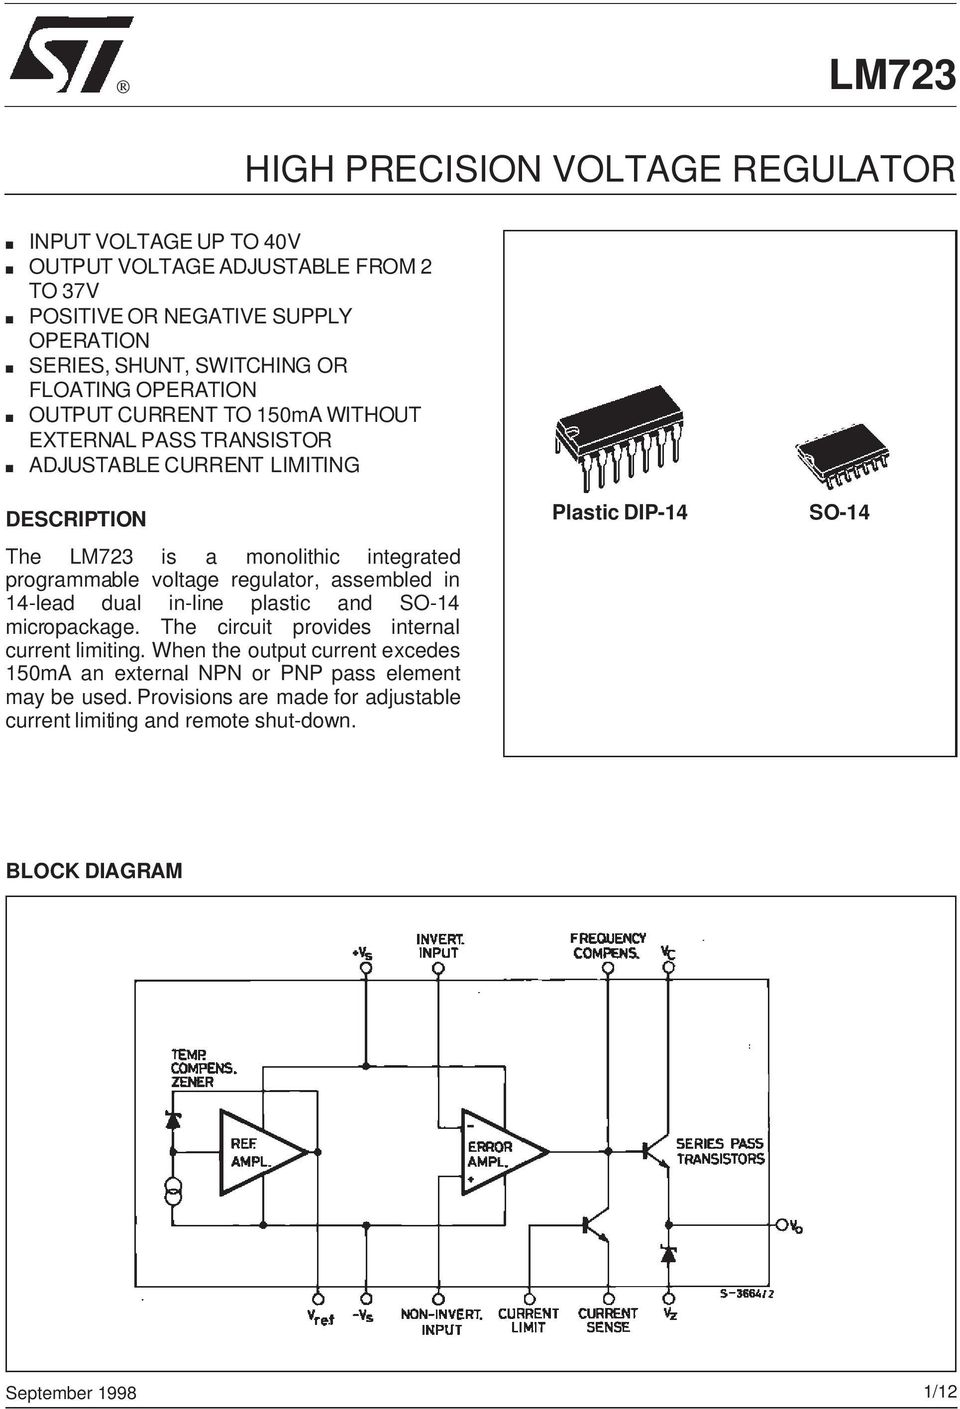 Stabiliziran Usmernik 1 30v 0 3a Digitalni V A Meter Pdf Proximity Sensor Using Ic Lm339 Circuit Diagram For Line Follower Voltage Regulator Assembled In 14 Lead Dual Plastic And So